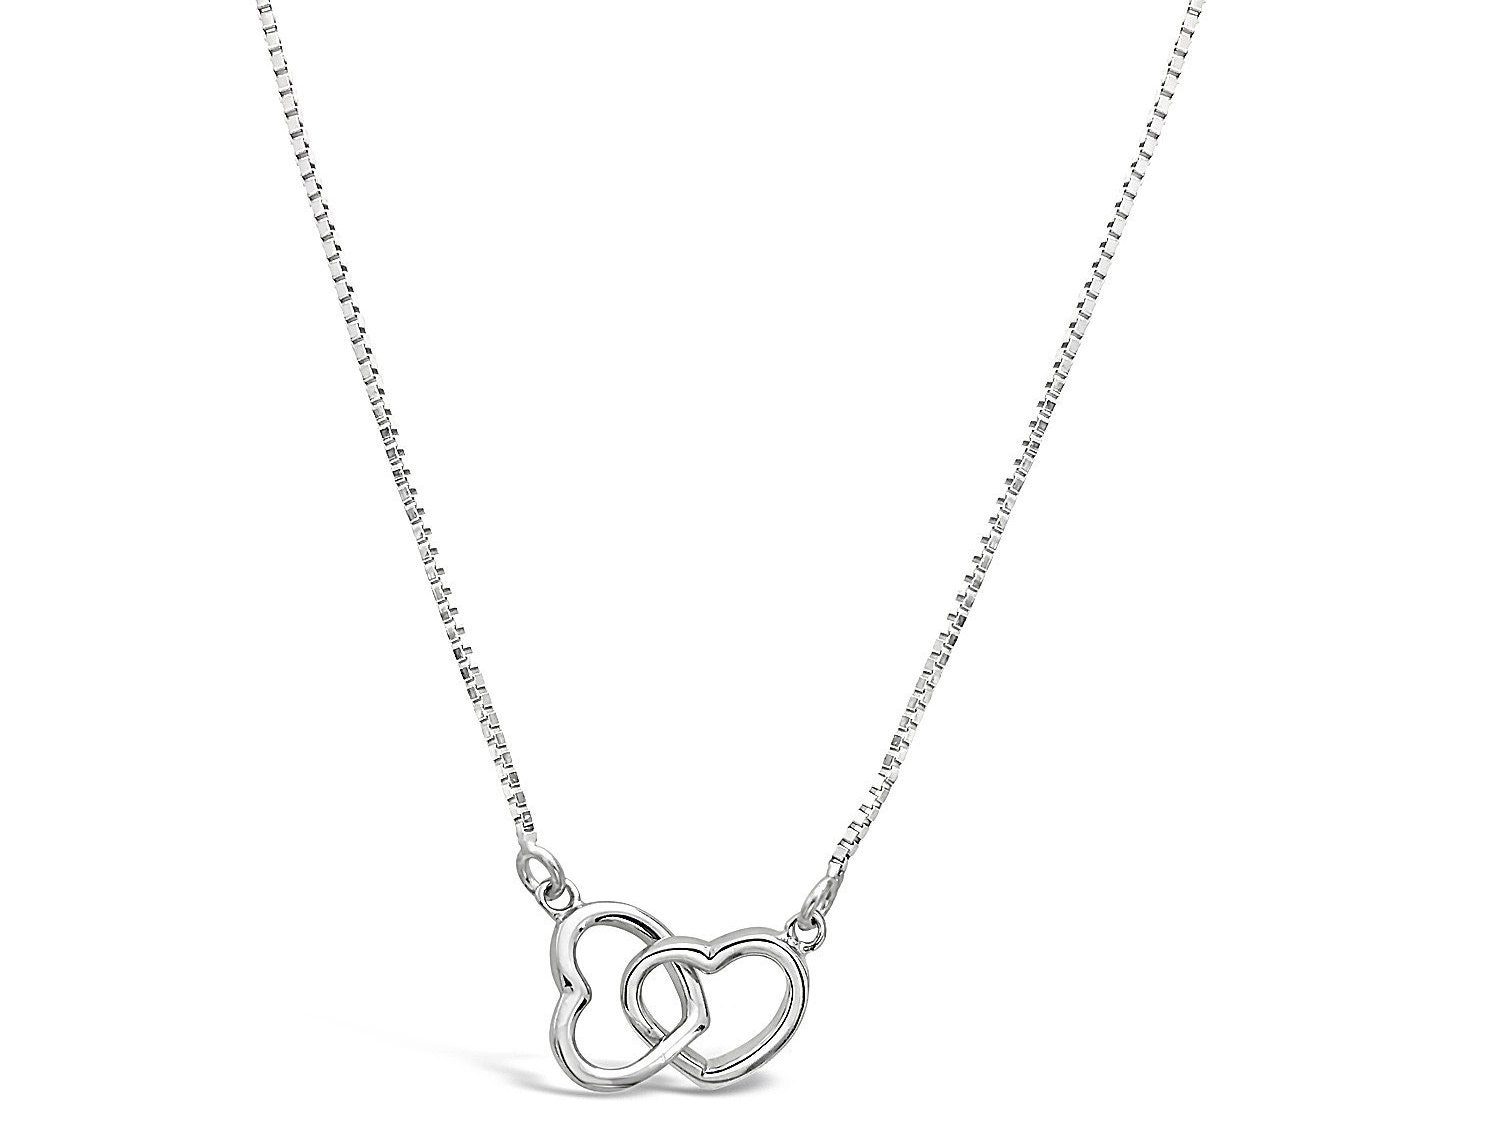 Hearts Intertwined Design Thin Silver Necklace Intertwined